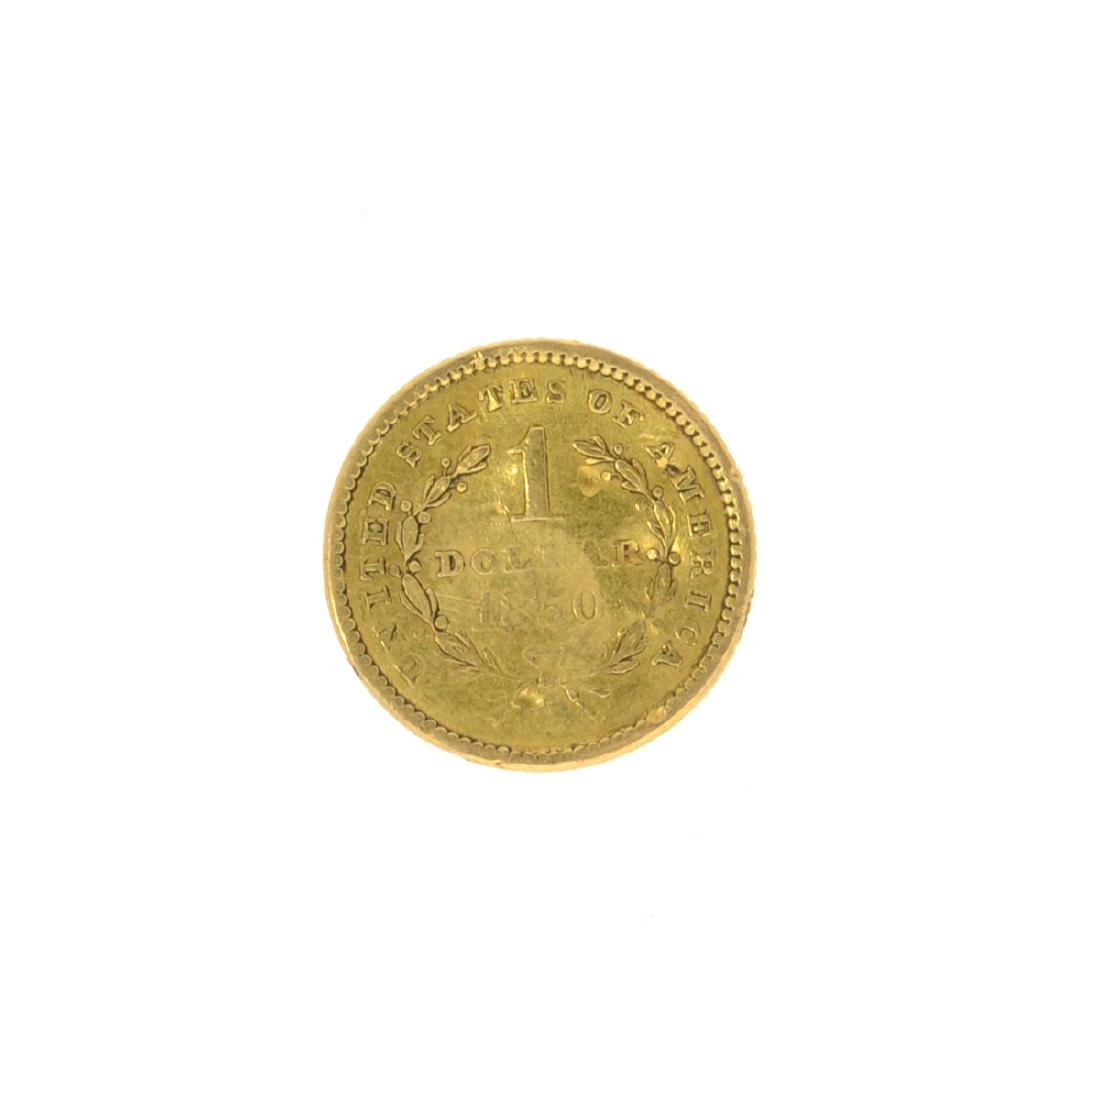 *1850 $1 U.S. Liberty Head Gold Coin (JG N) - 2